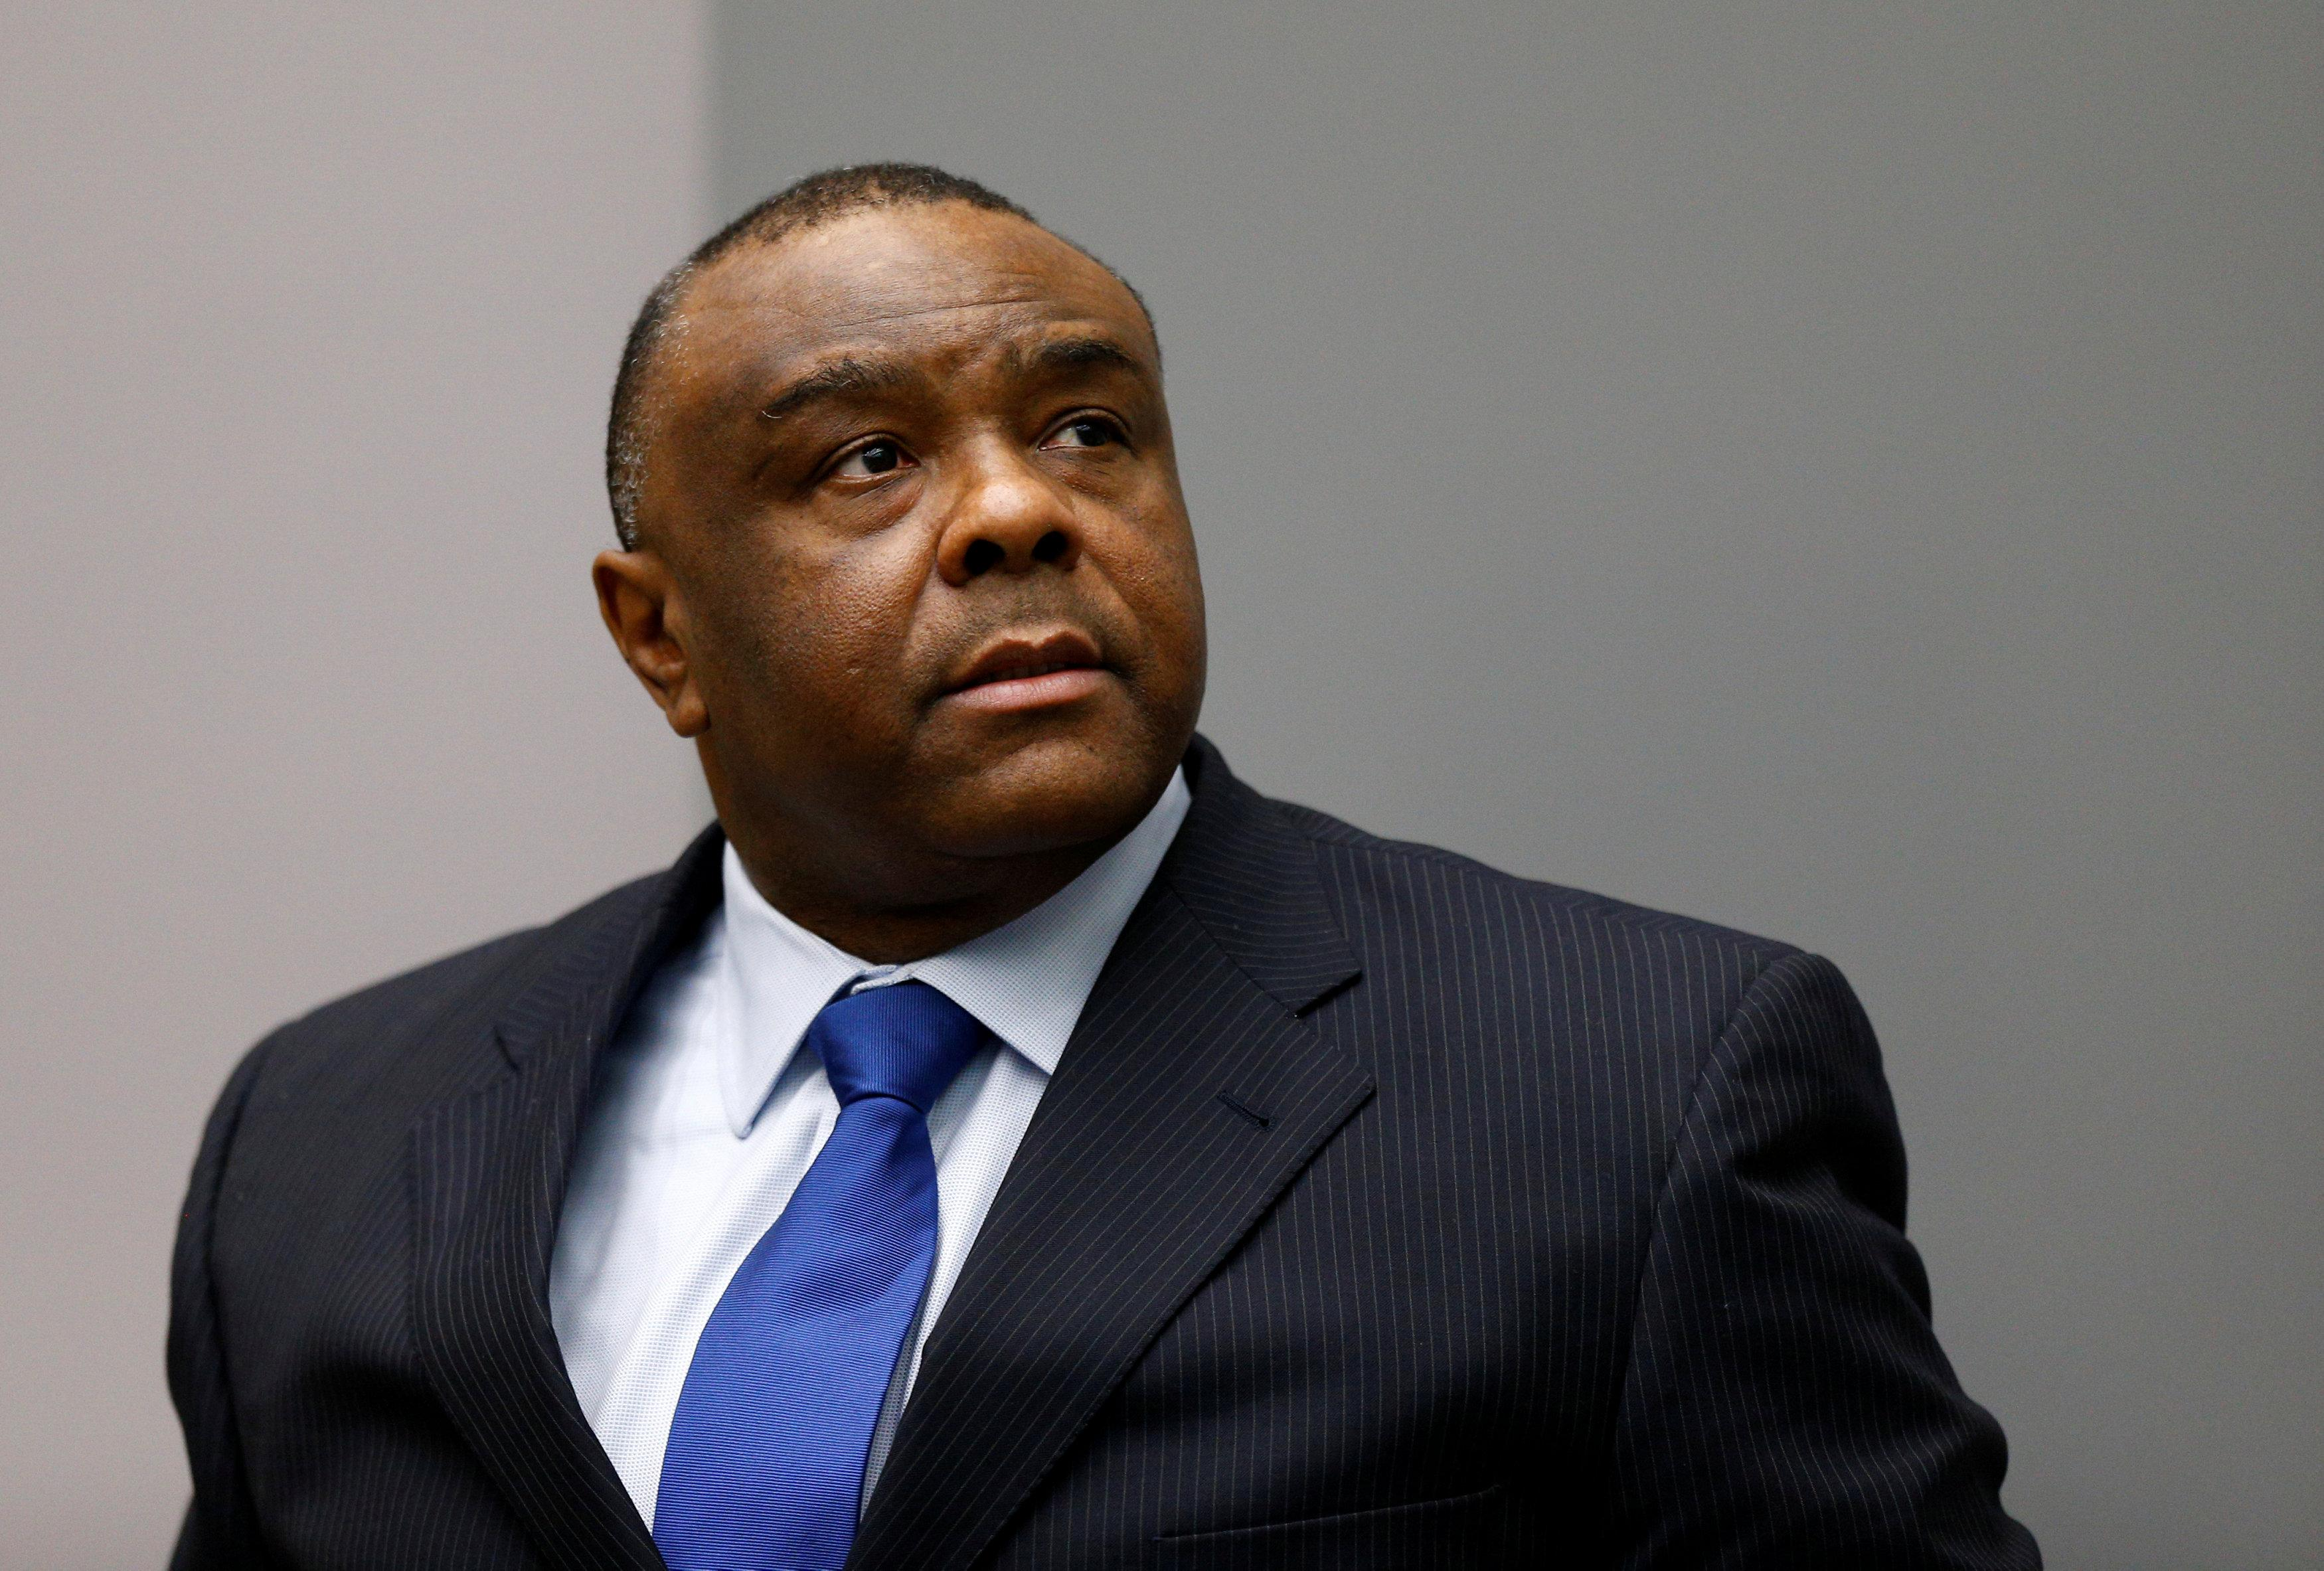 Jean-Pierre Bemba Gombo of the Democratic Republic of the Congo sits in the courtroom of the International Criminal Court (ICC) in The Hague, June 21, 2016. Michael Kooren